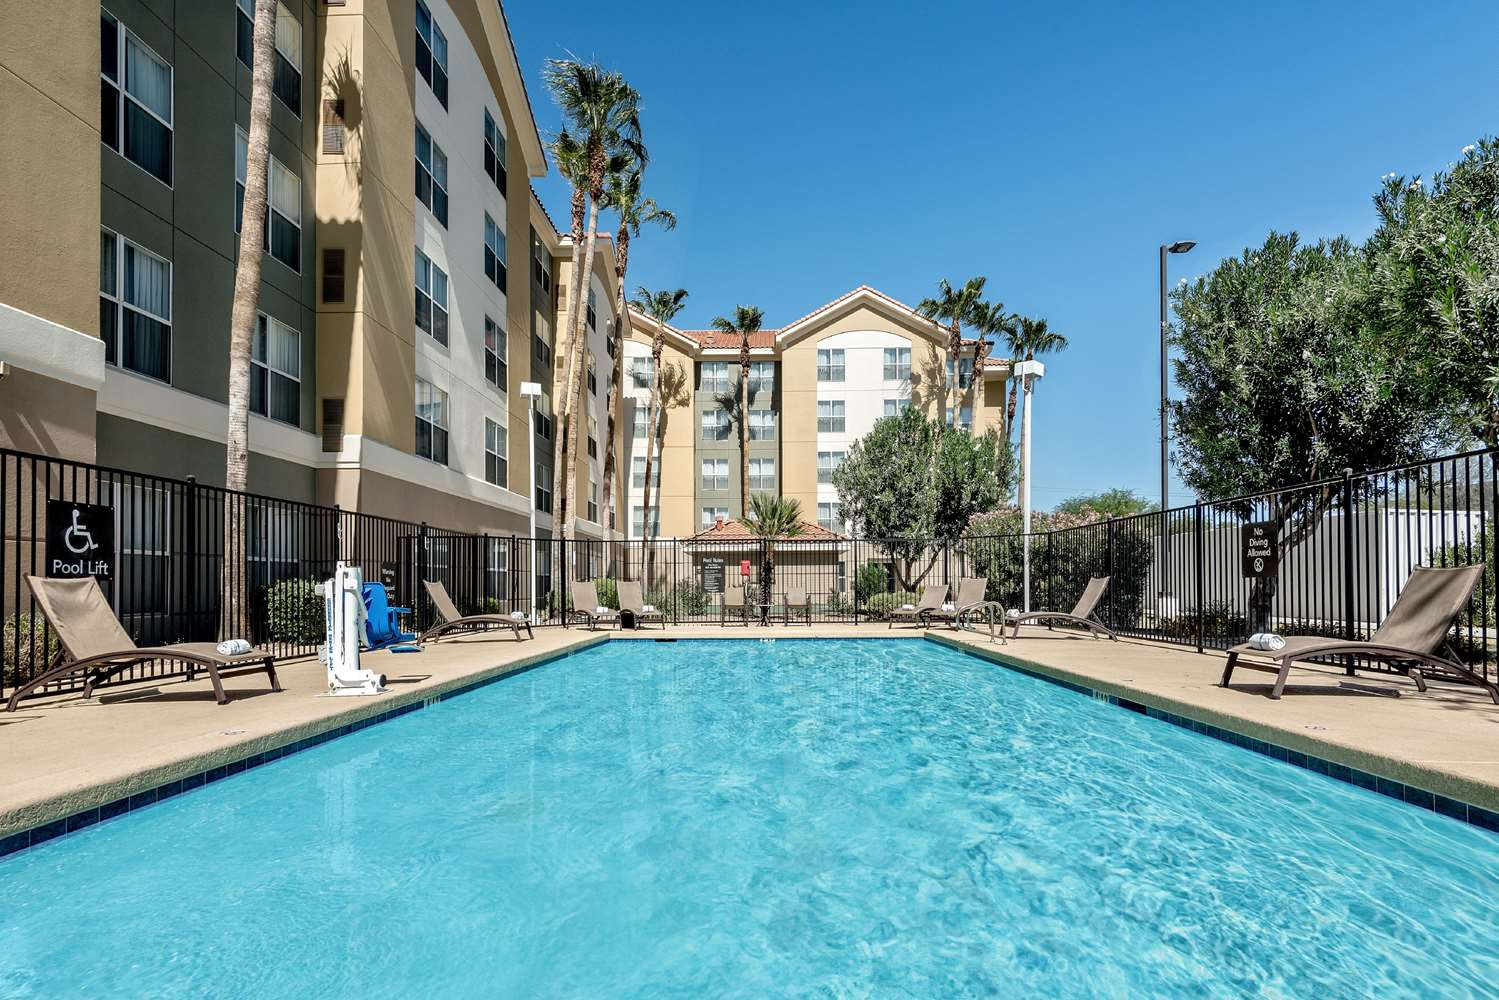 Pool - Homewood Suites by Hilton Metro Center Phoenix